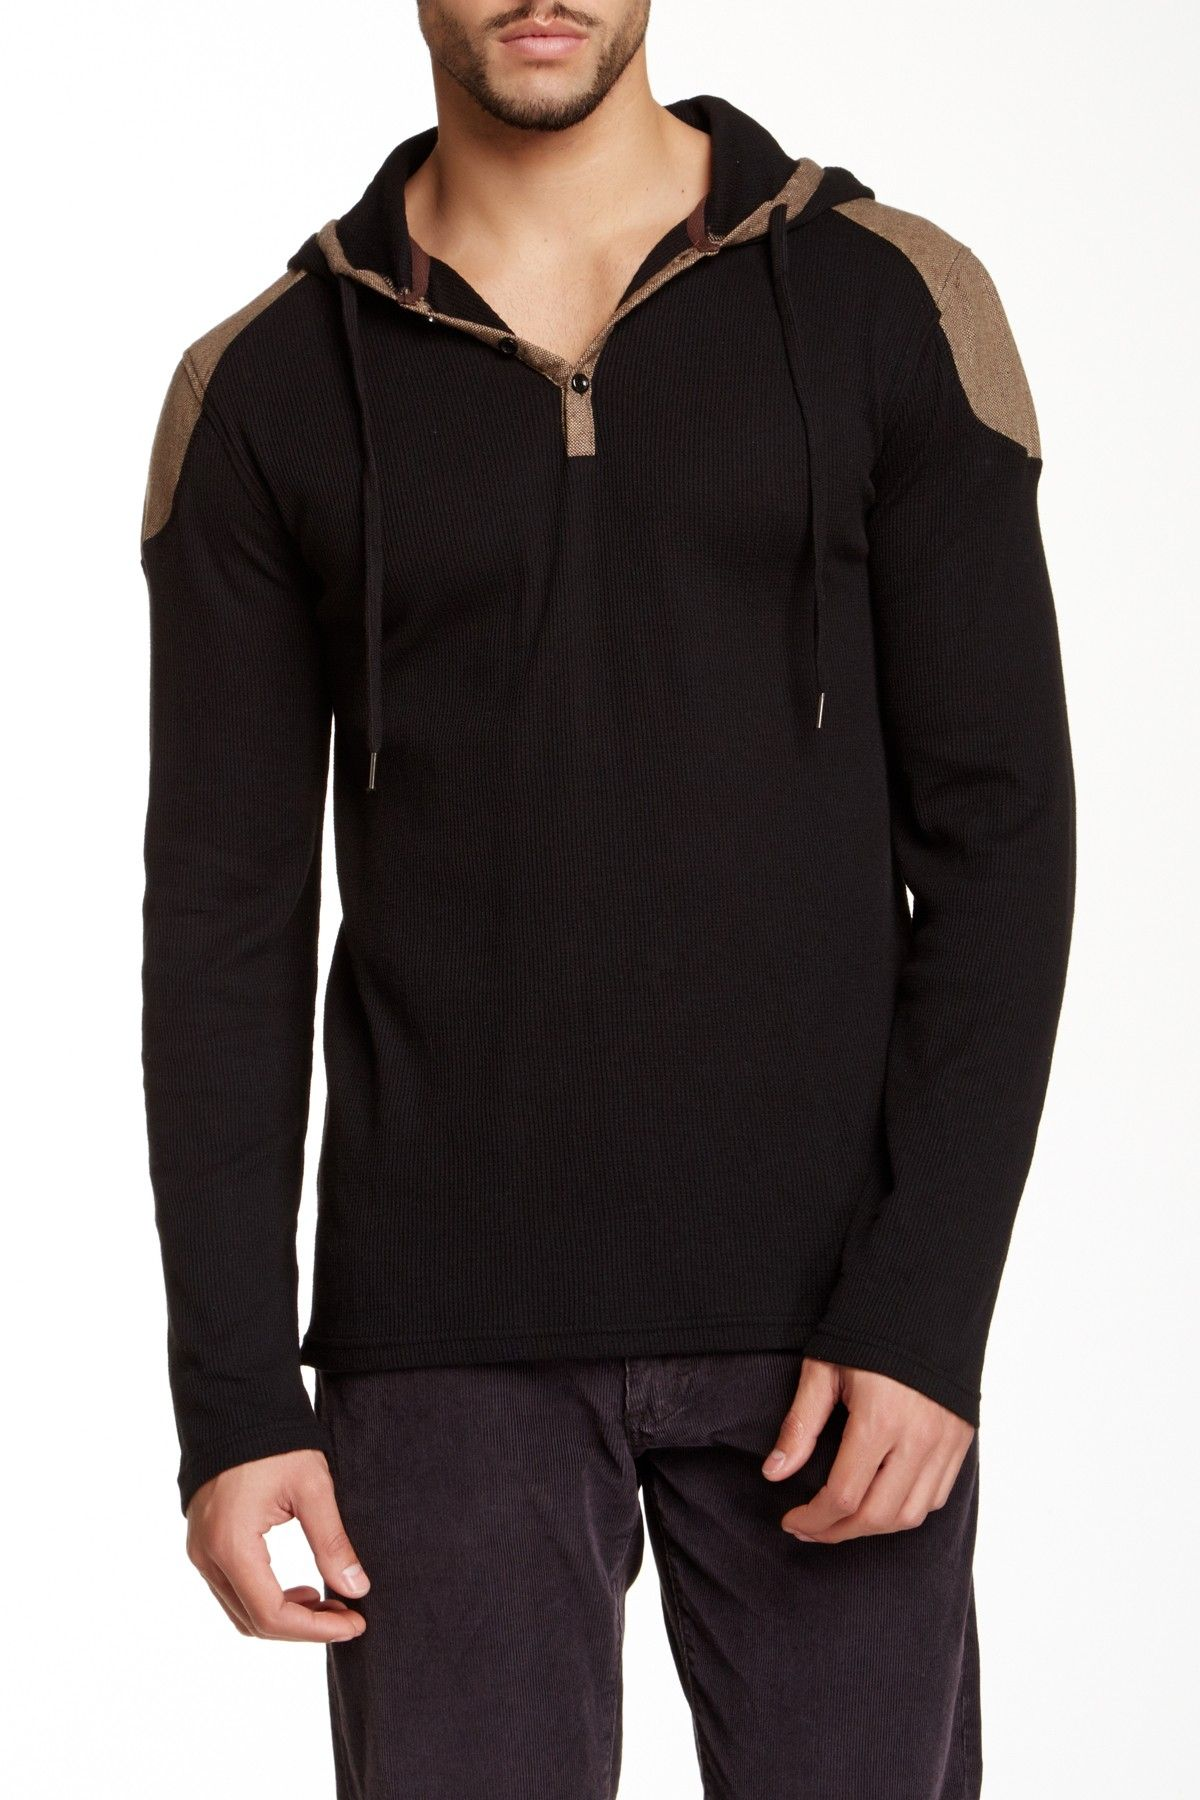 Sovereign Code Omphalius Hoodie by Sovereign Code on @HauteLook